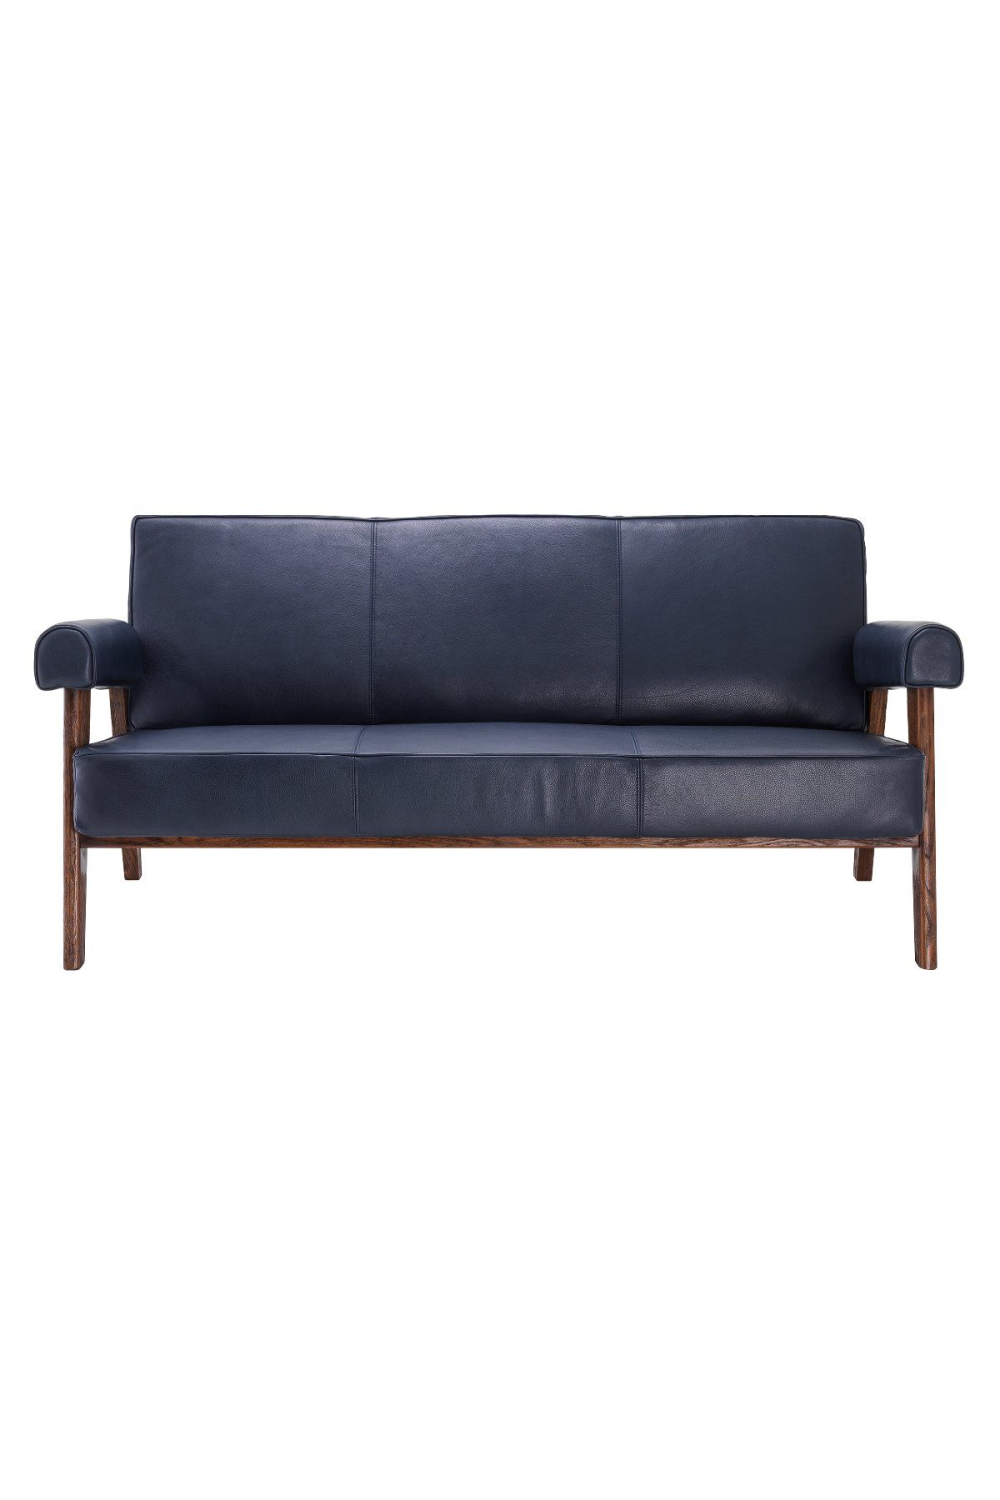 Blue Leather Wooden Sofa | Eichholtz Milo | #1 Eichholtz Retailer